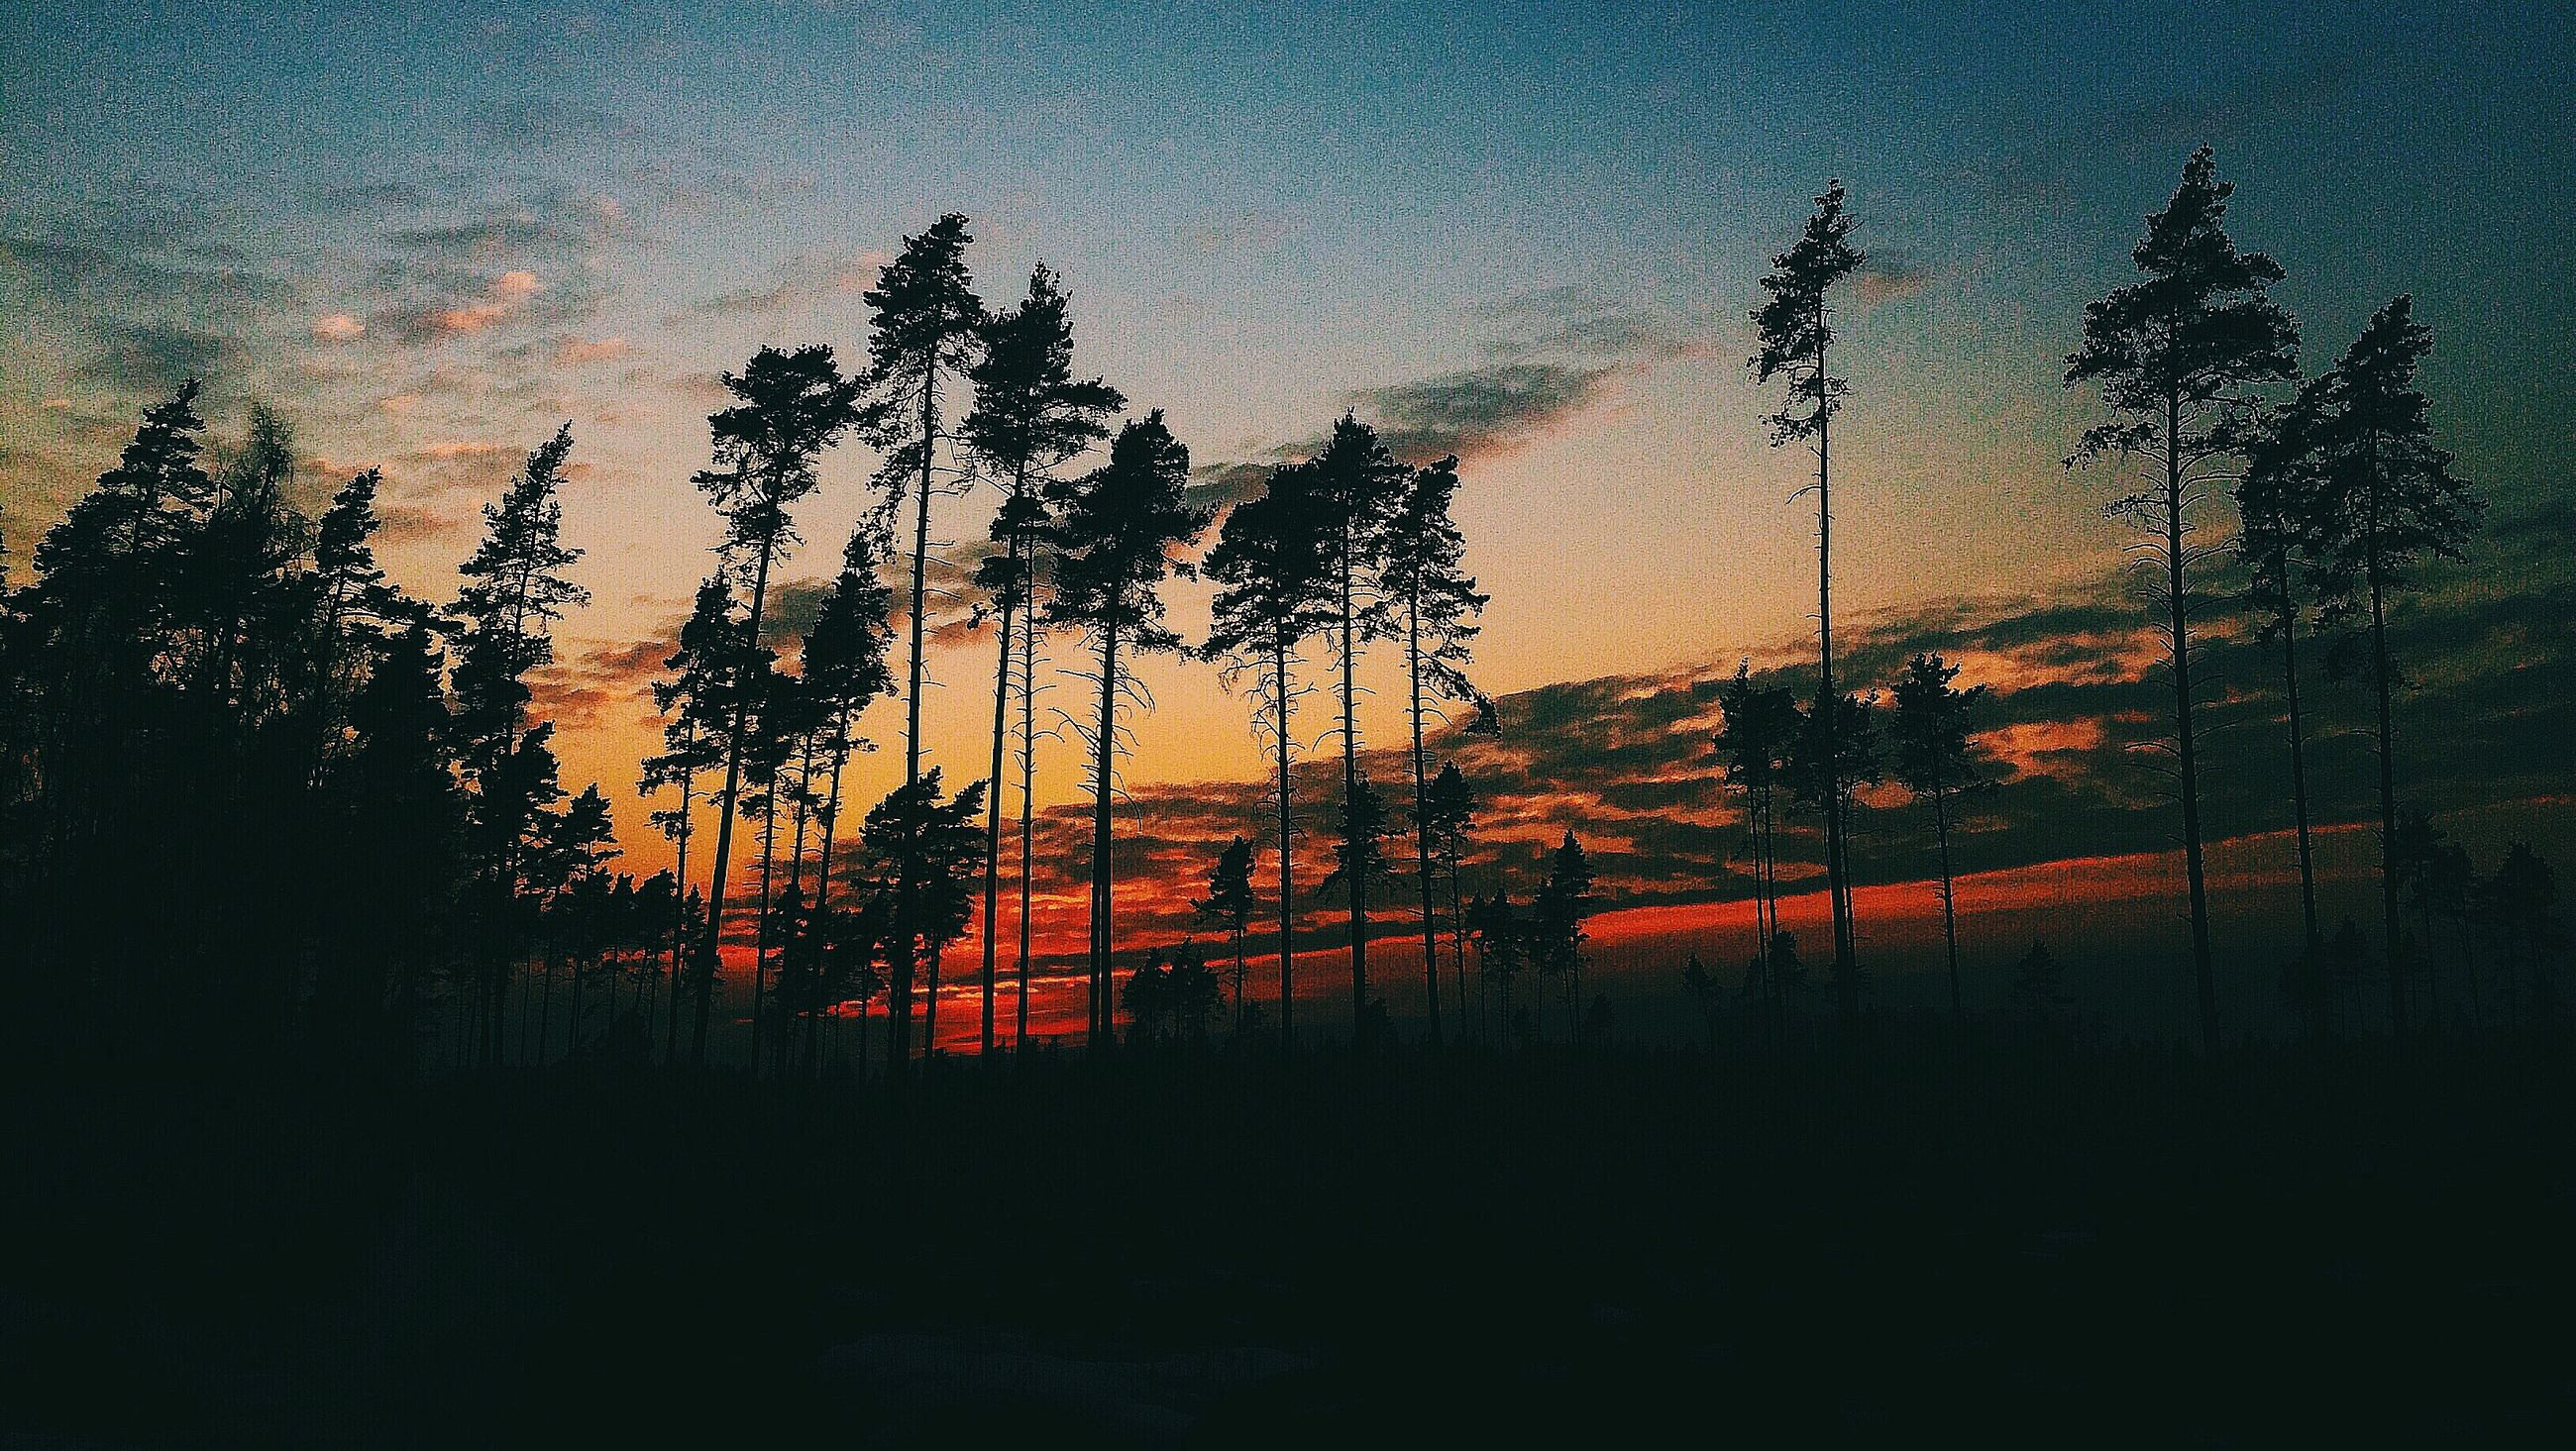 sunset, silhouette, tree, sky, orange color, dusk, scenics, nature, tranquility, dark, beauty in nature, night, tranquil scene, illuminated, window, no people, cloud - sky, weather, transparent, glass - material